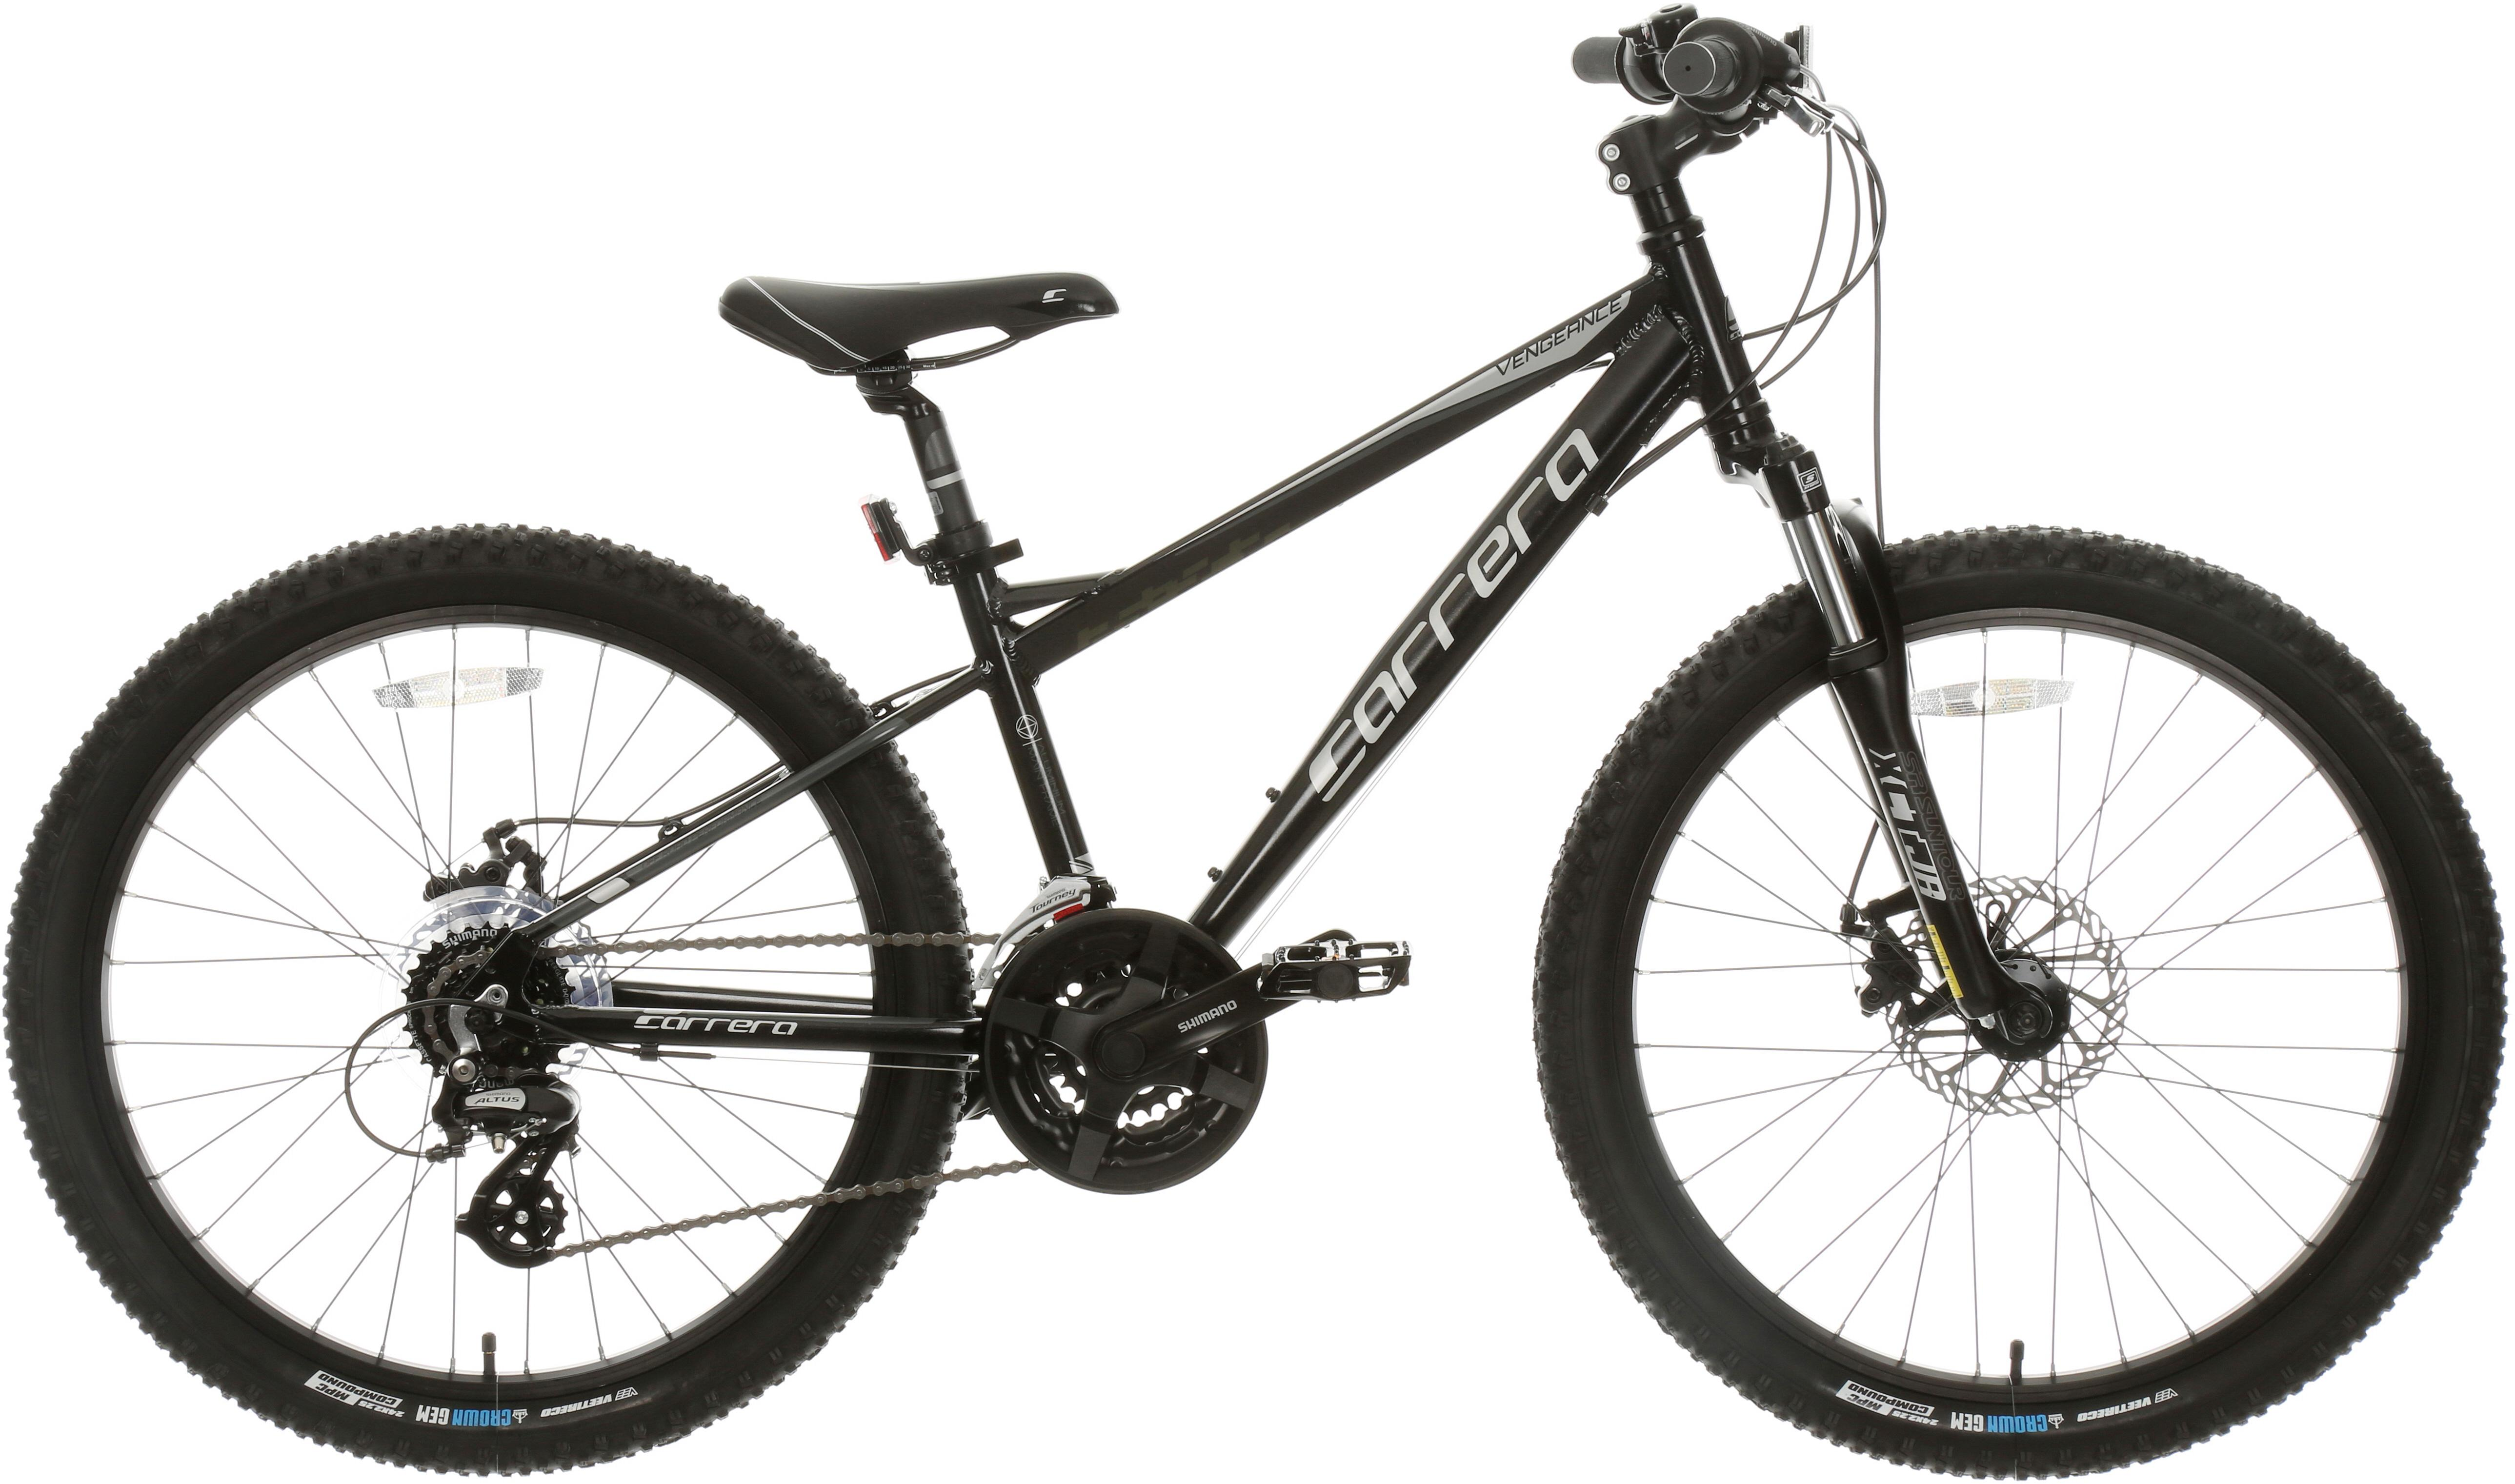 Carrera Vengeance Junior Mountain Bike - 24 inch Wheel